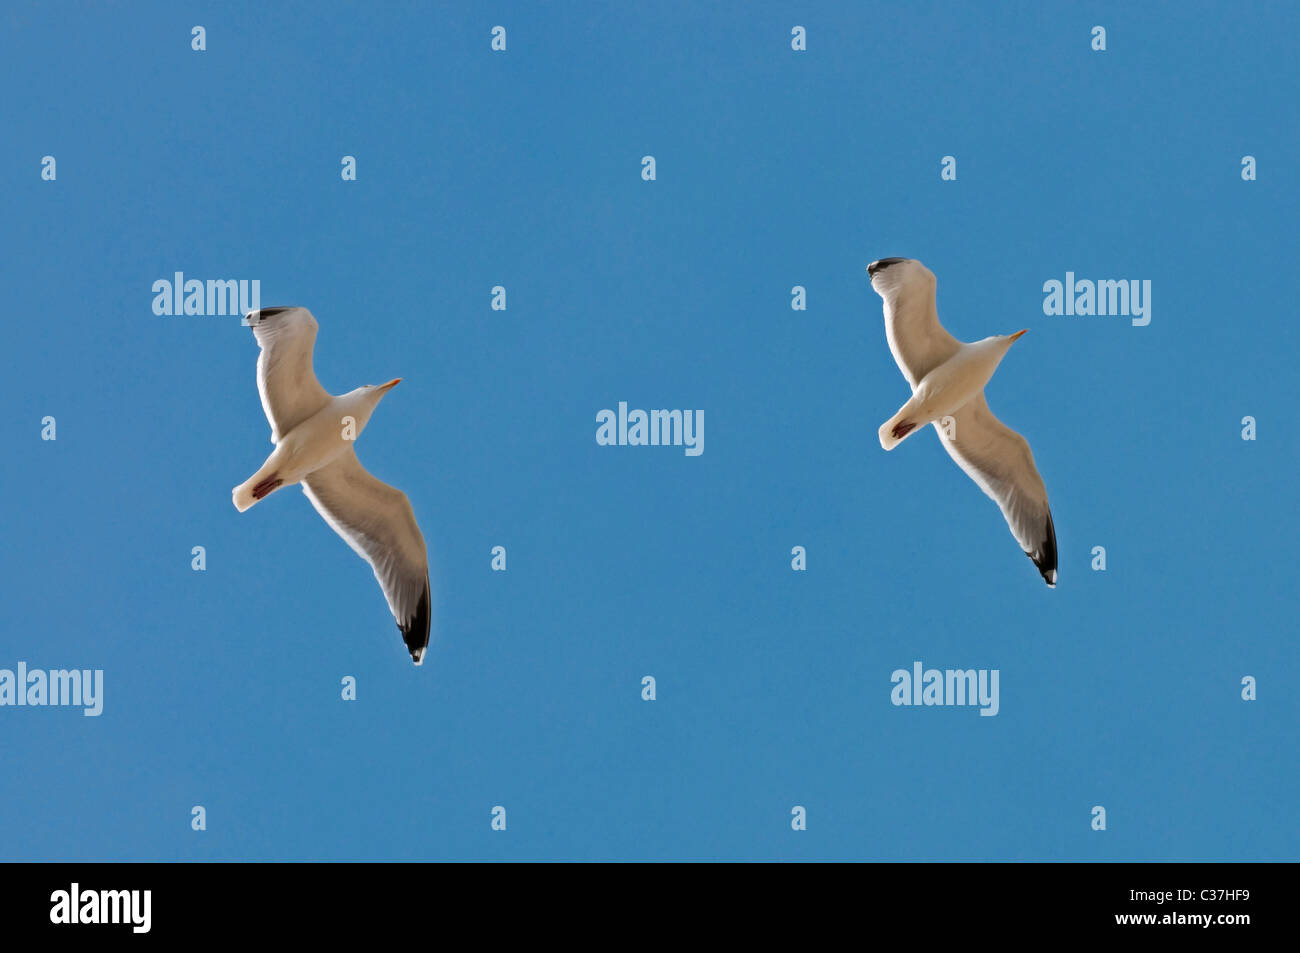 Seagulls (Laridae) flying in the sky, Province of Zeeland, the Netherlands - Stock Image